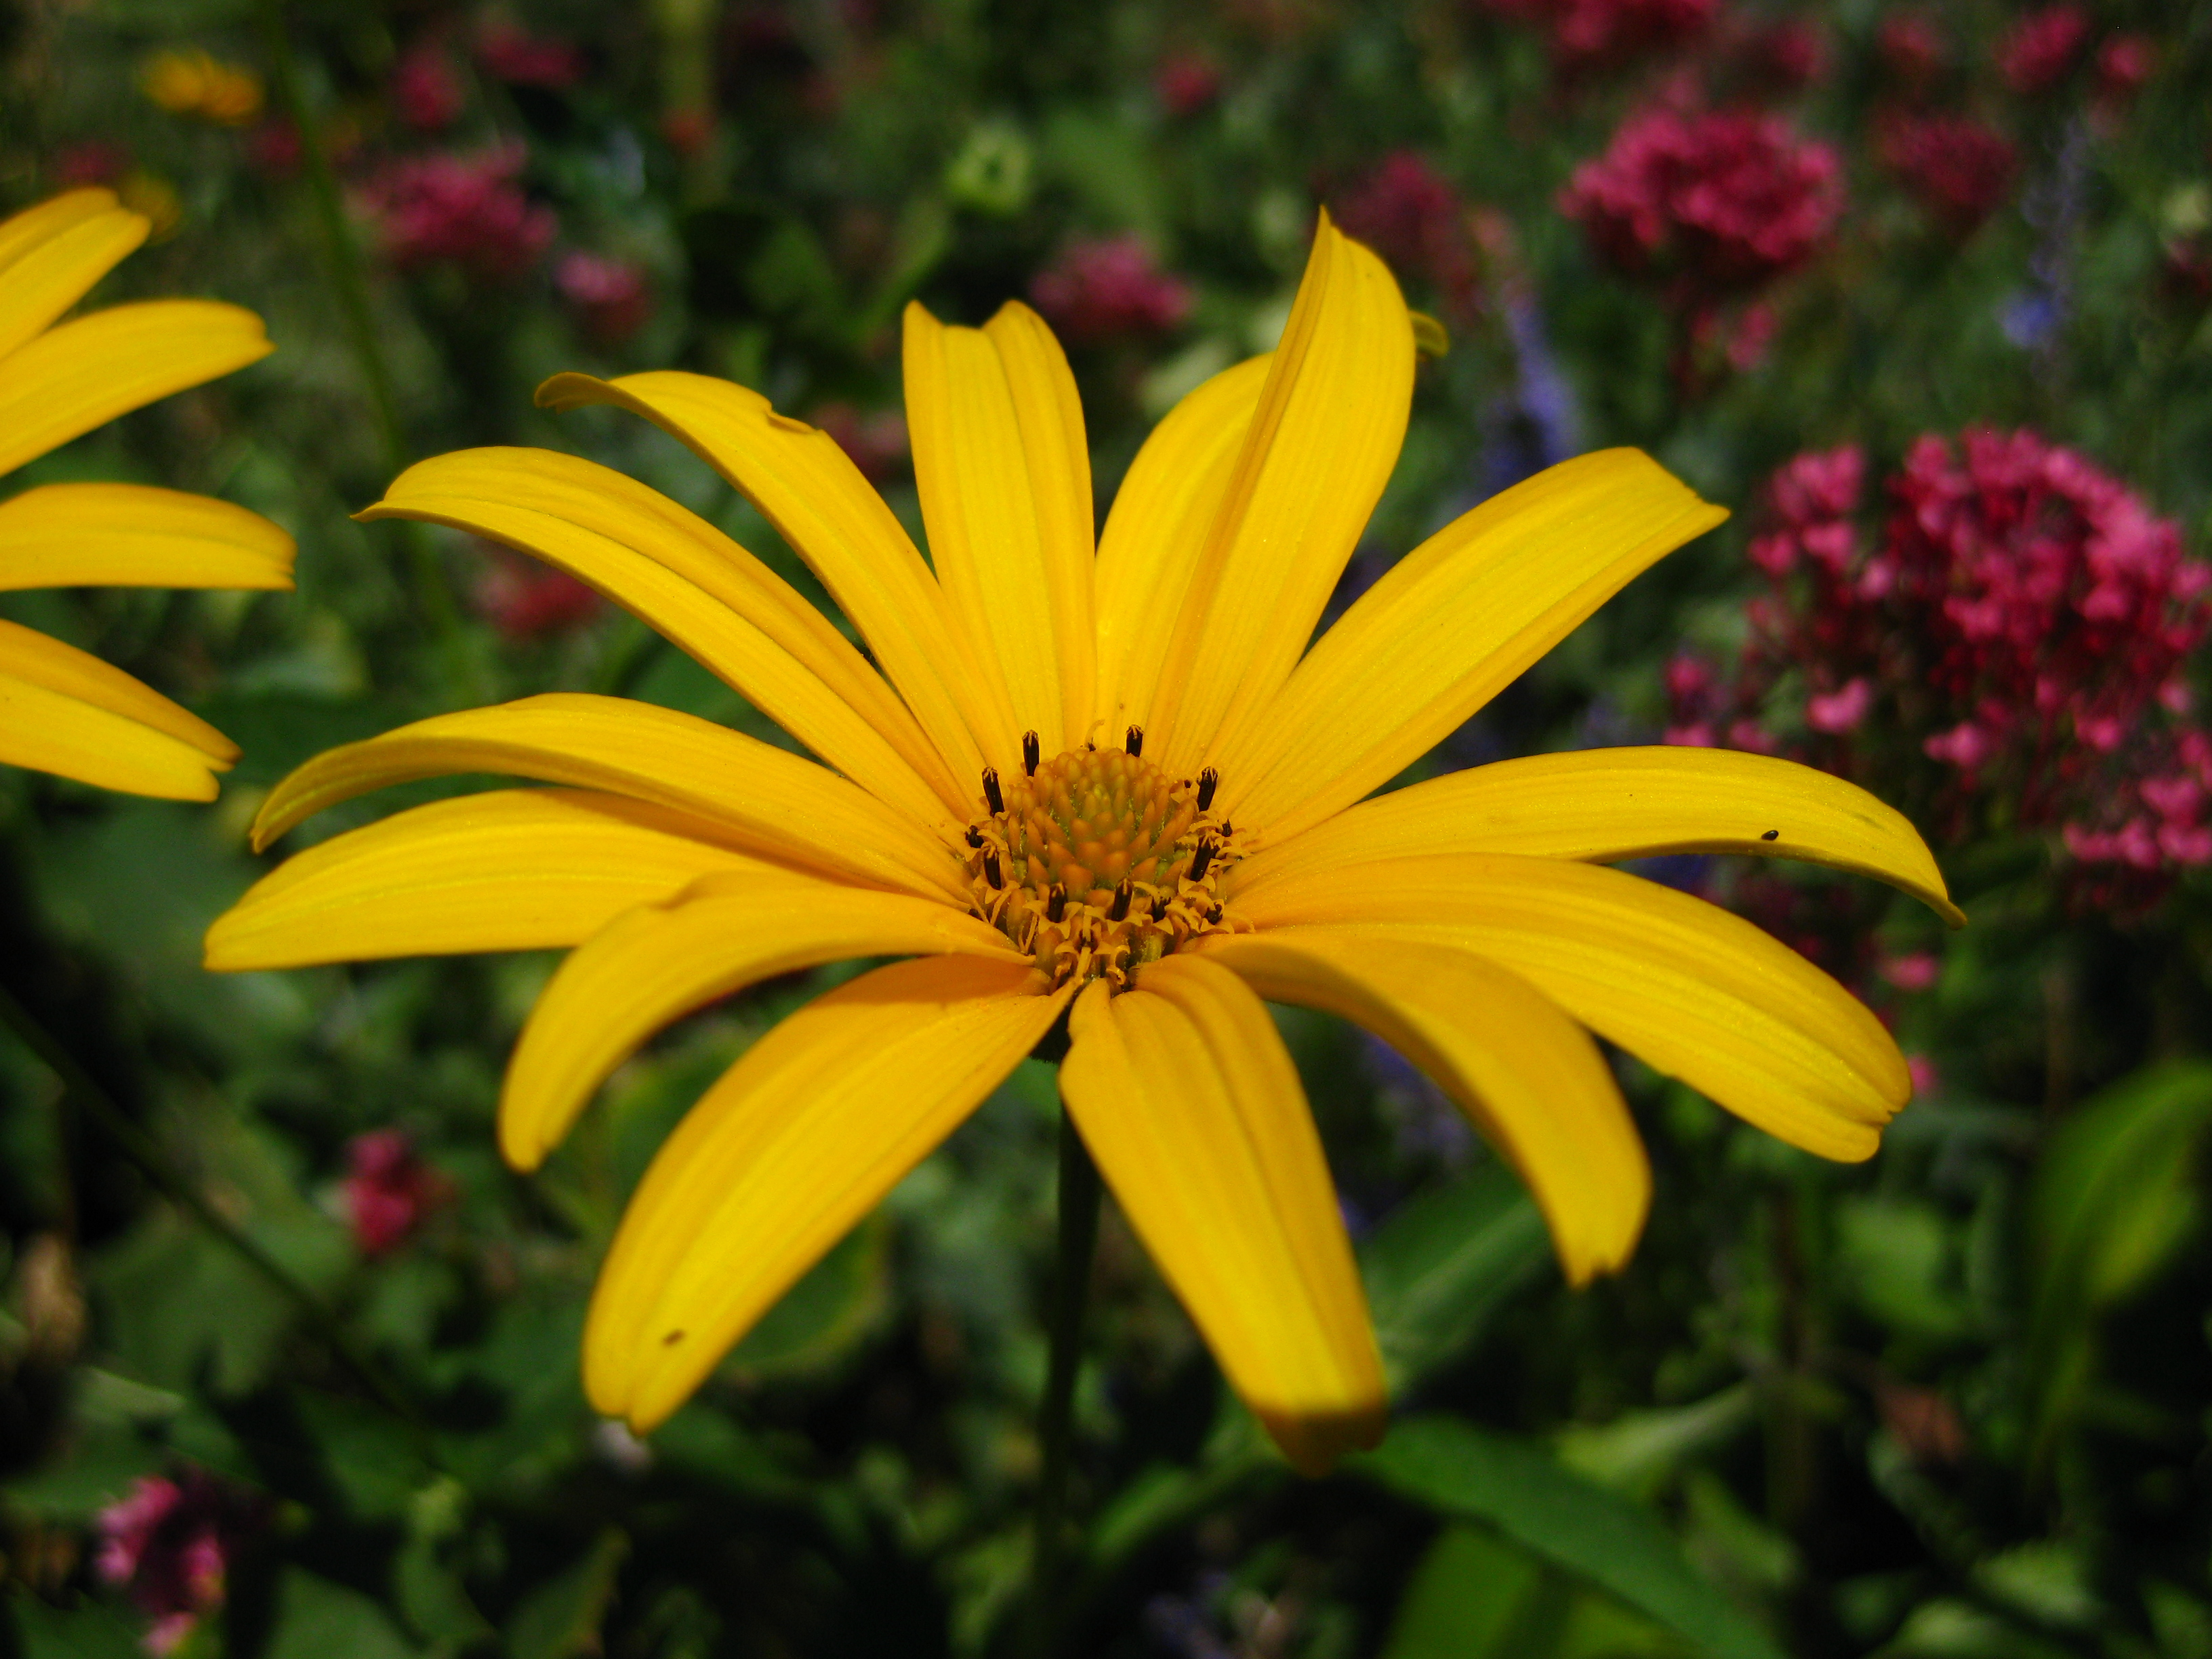 Yellow daisy close-up, Daisy, Flower, Nature, Outdoor, HQ Photo